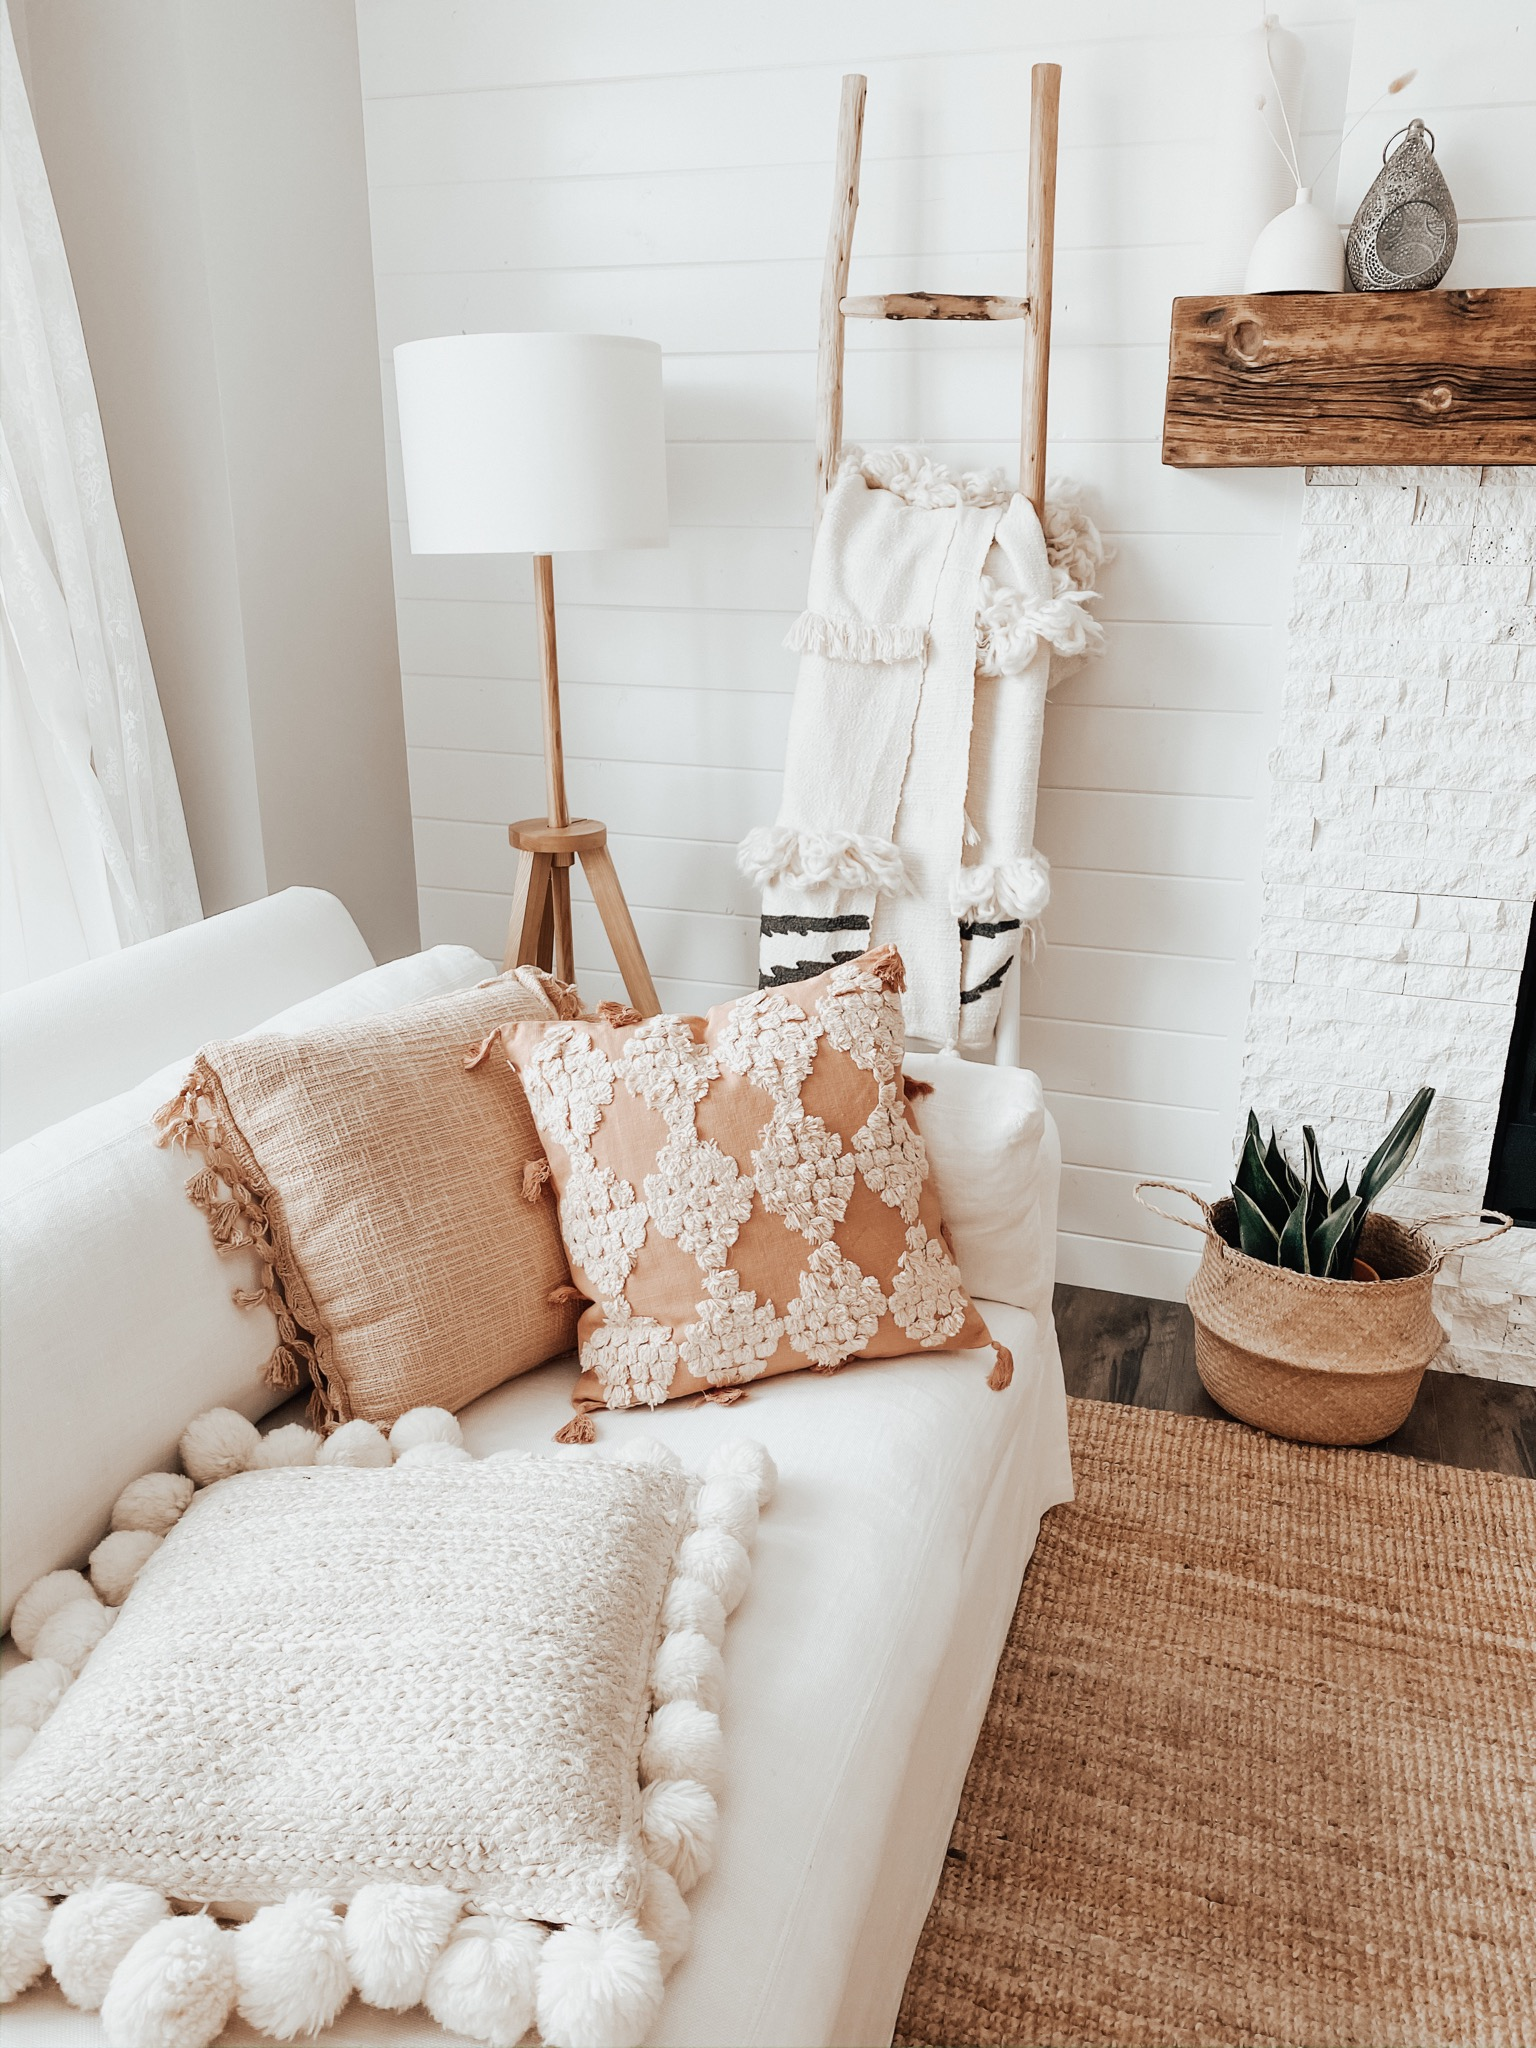 <center>ANTHROPOLOGIE HOME EXTRA 40% OFF SALE! 20% OFF SELECTED</center>